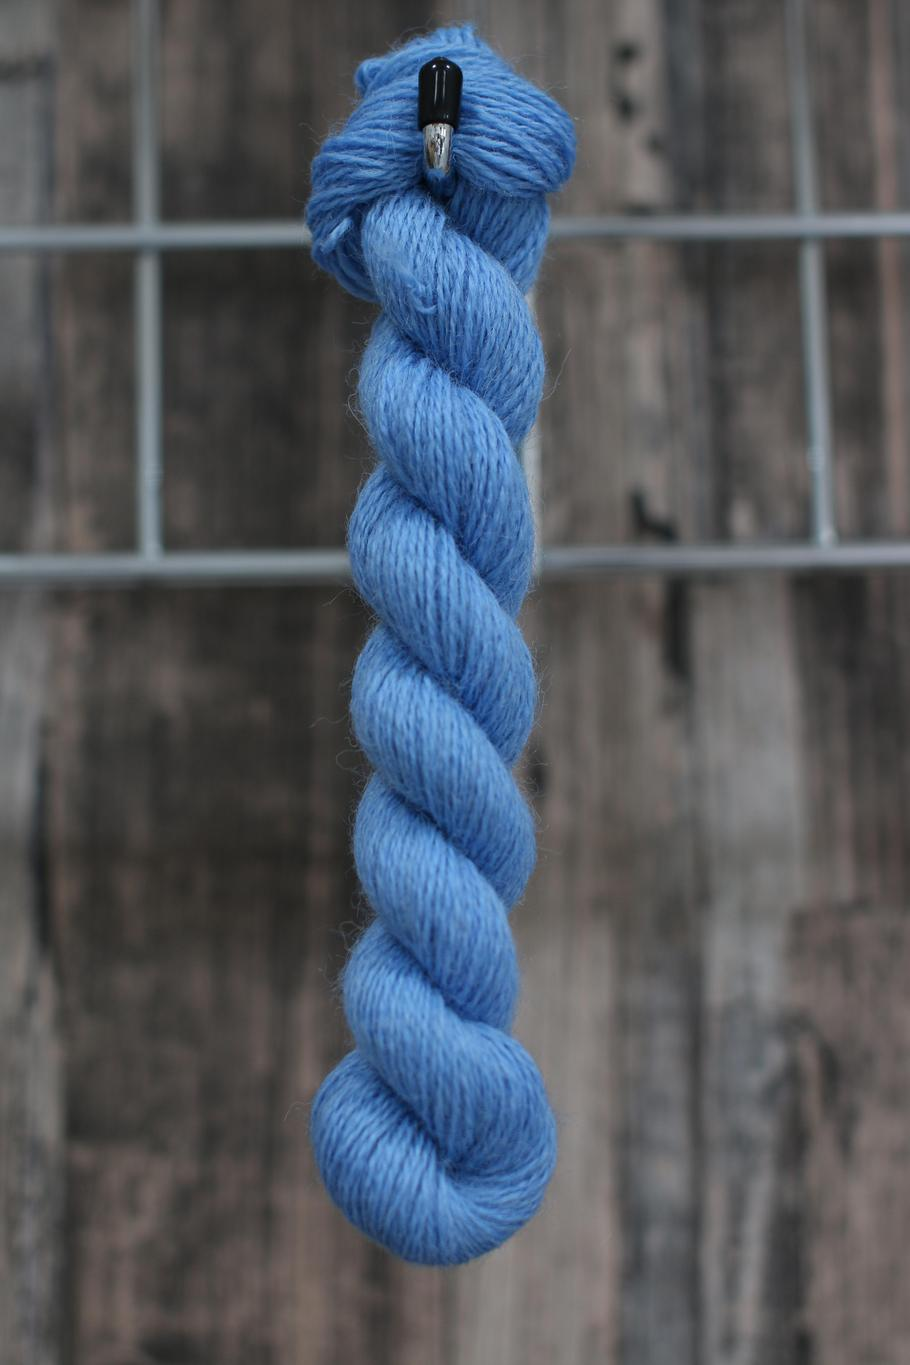 a skein of bright blue wool hanging from a hook